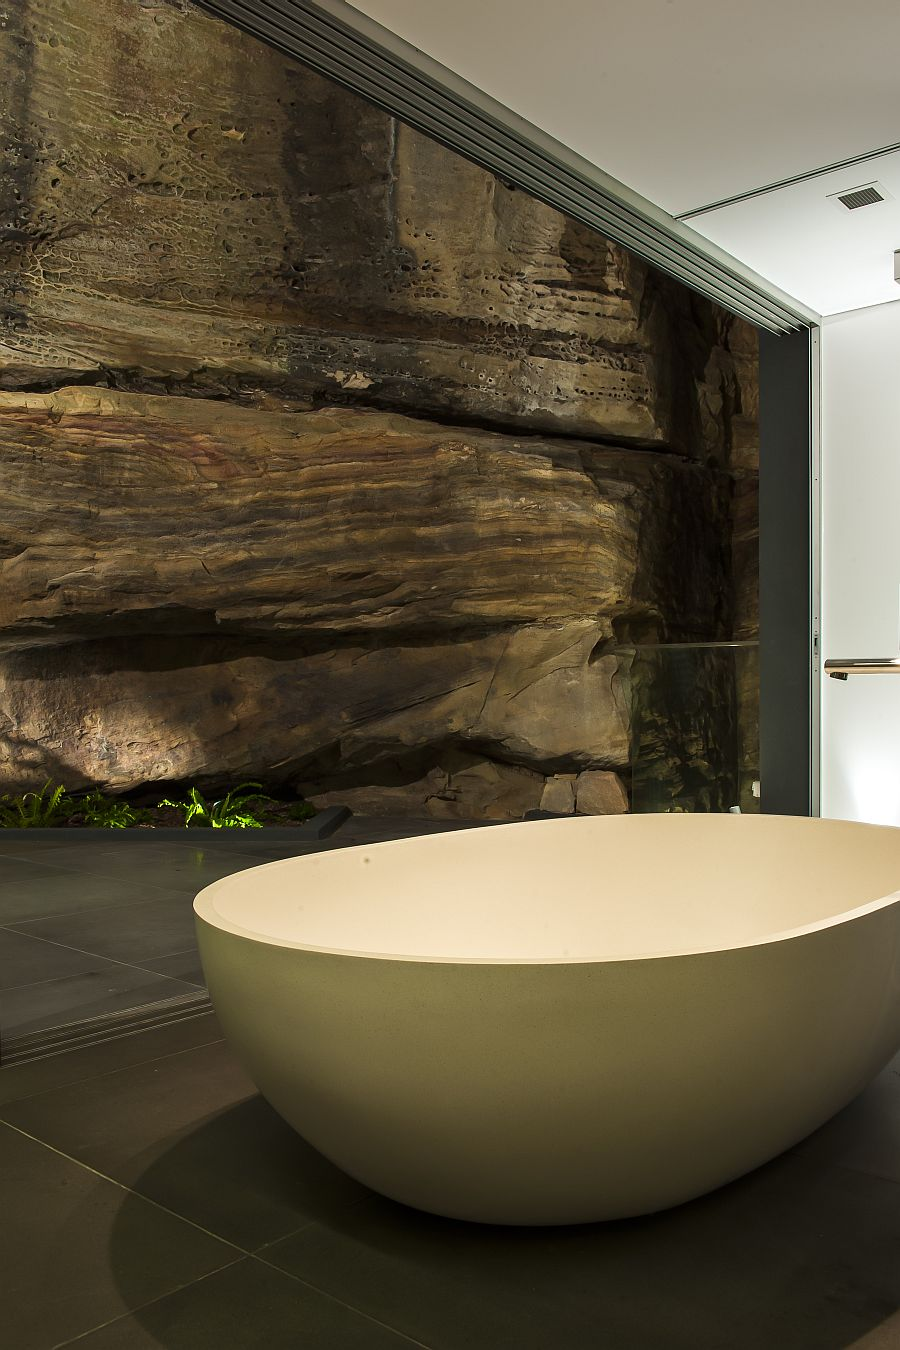 En suite bathroom designs pictures - View In Gallery Freestanding Bathtub With The Natural Cliff Wall Behind It